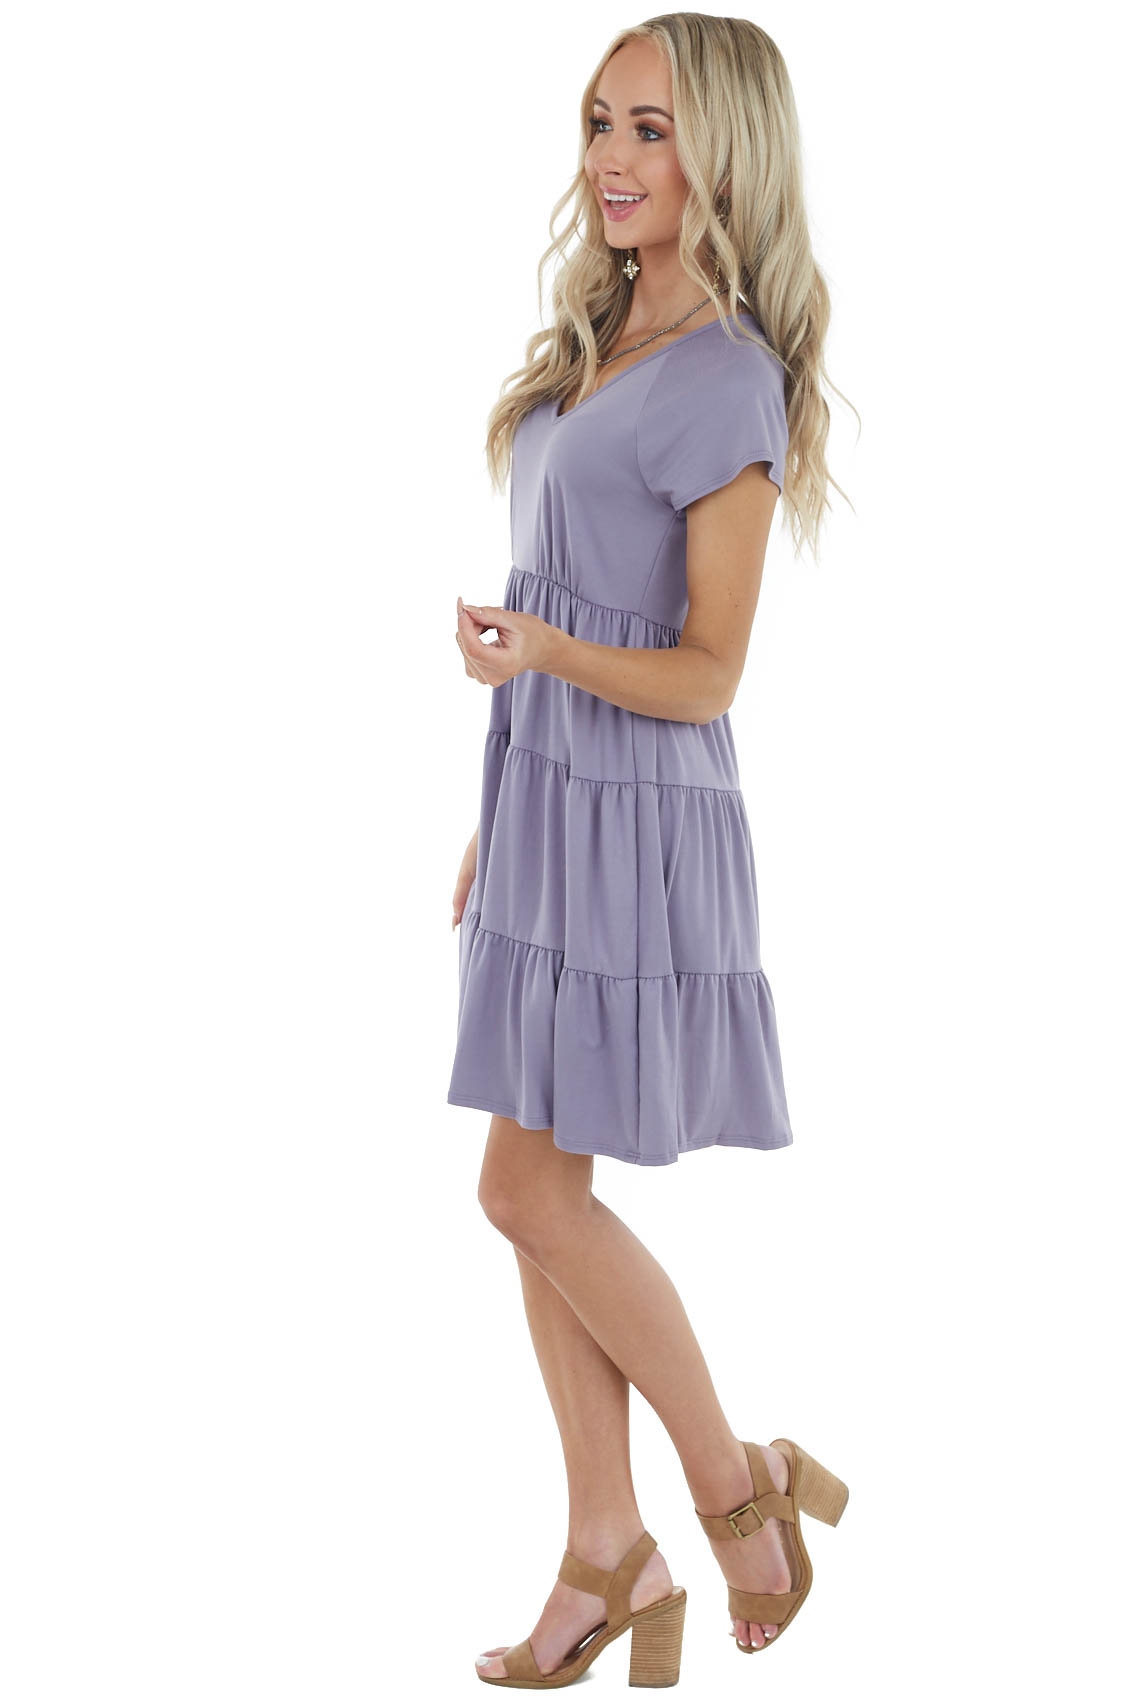 Lavender Tiered V Neck Short Knit Dress with Short Sleeves